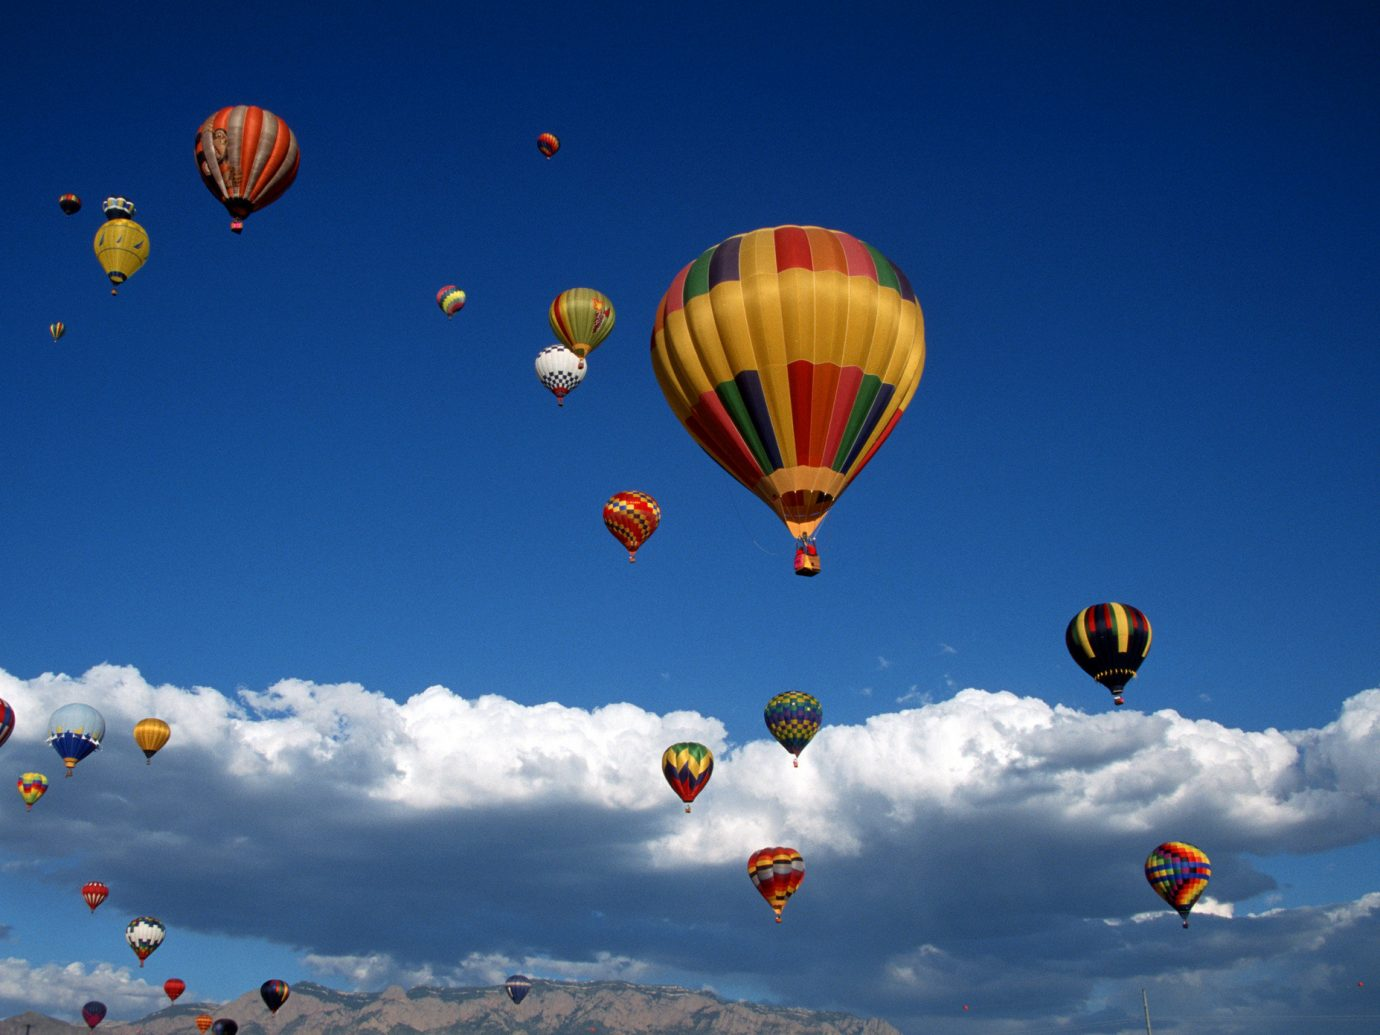 Trip Ideas aircraft balloon transport sky hot air ballooning Hot Air Balloon vehicle atmosphere of earth toy different wing bunch several variety